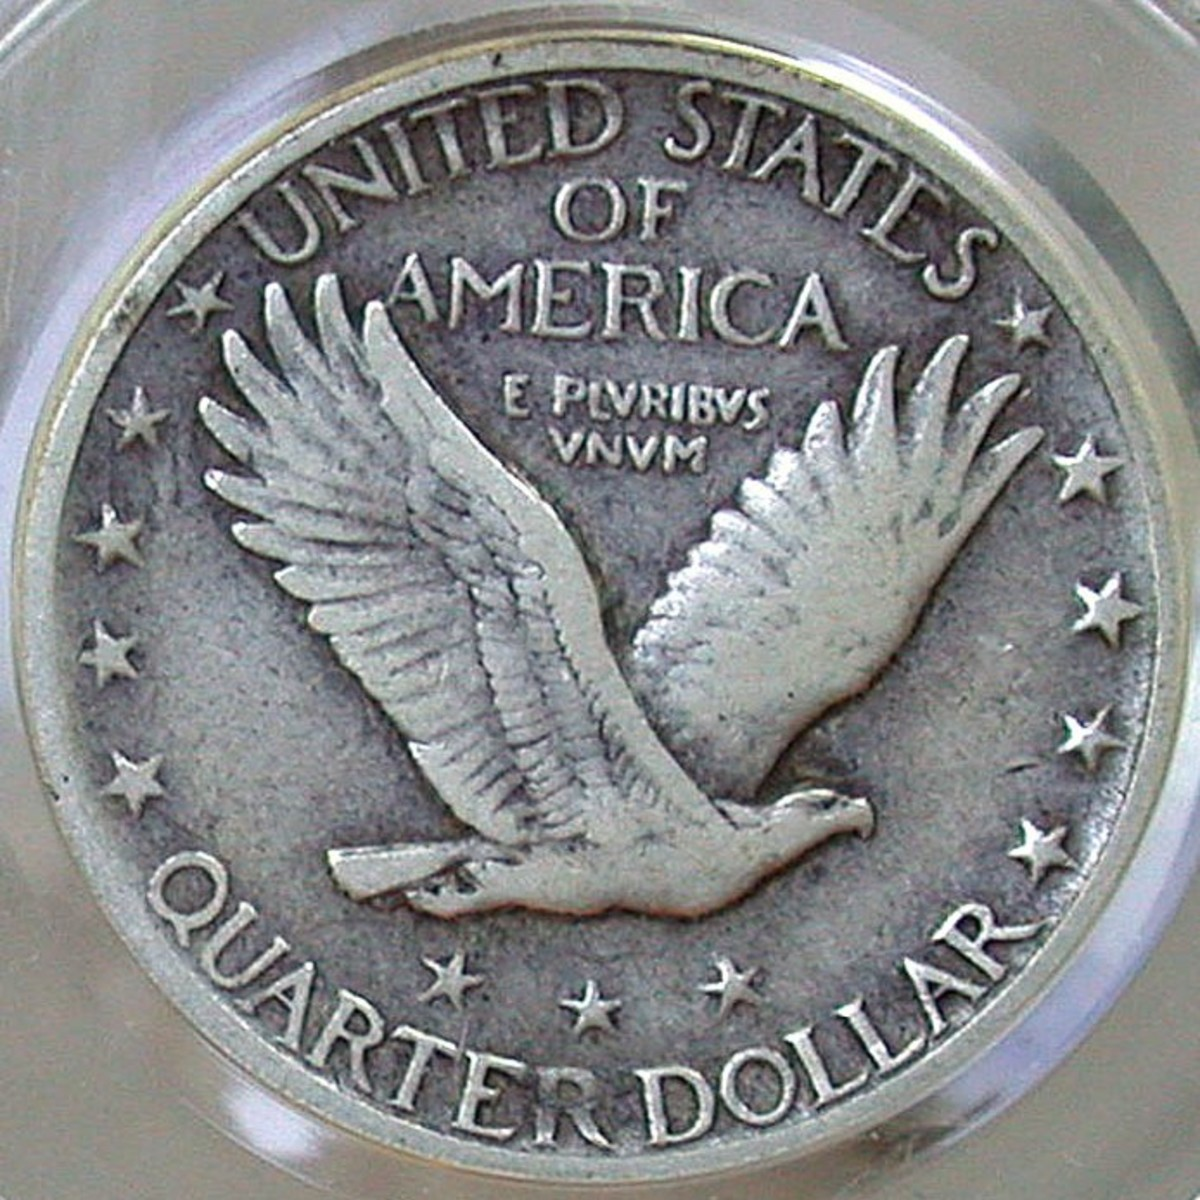 1917 Standing Liberty Quarter Reverse. Variety 2 w/ stars under the Eagle. Photo Courtesy: coinpage.com